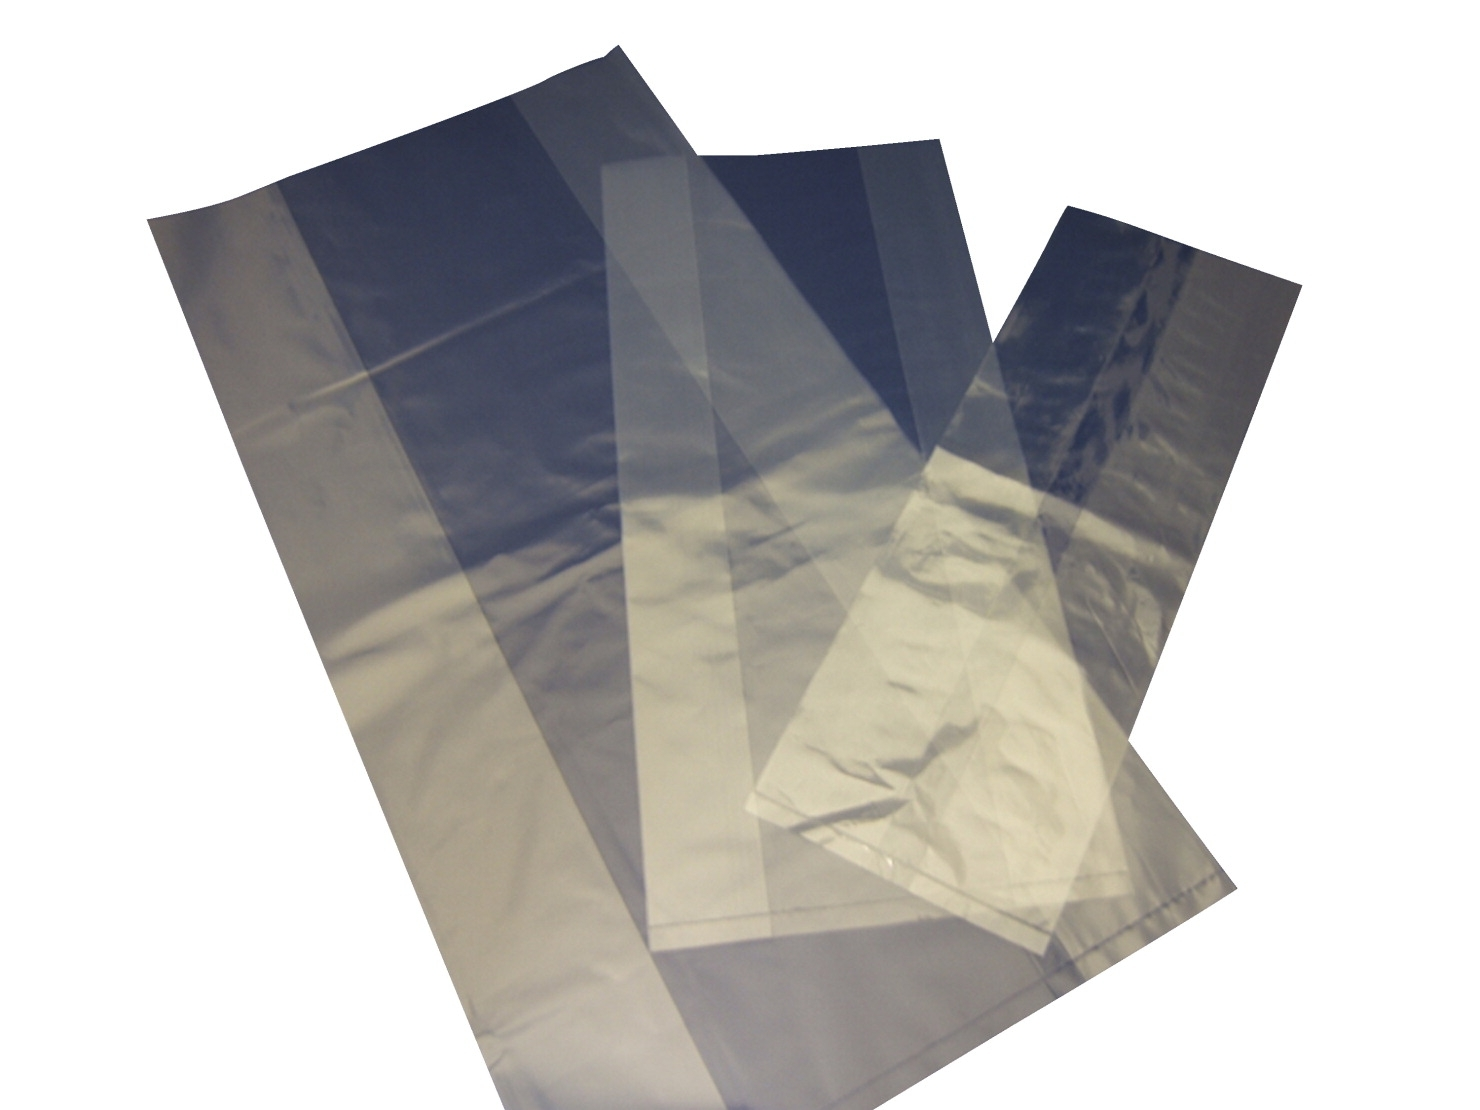 Facilities Waste Supplies & Recycling Covers & Bags & Liners - 301865 - Fantapak 18 Quart Plastic Bag; Clear; 10 X 4 X 20 In. 301865